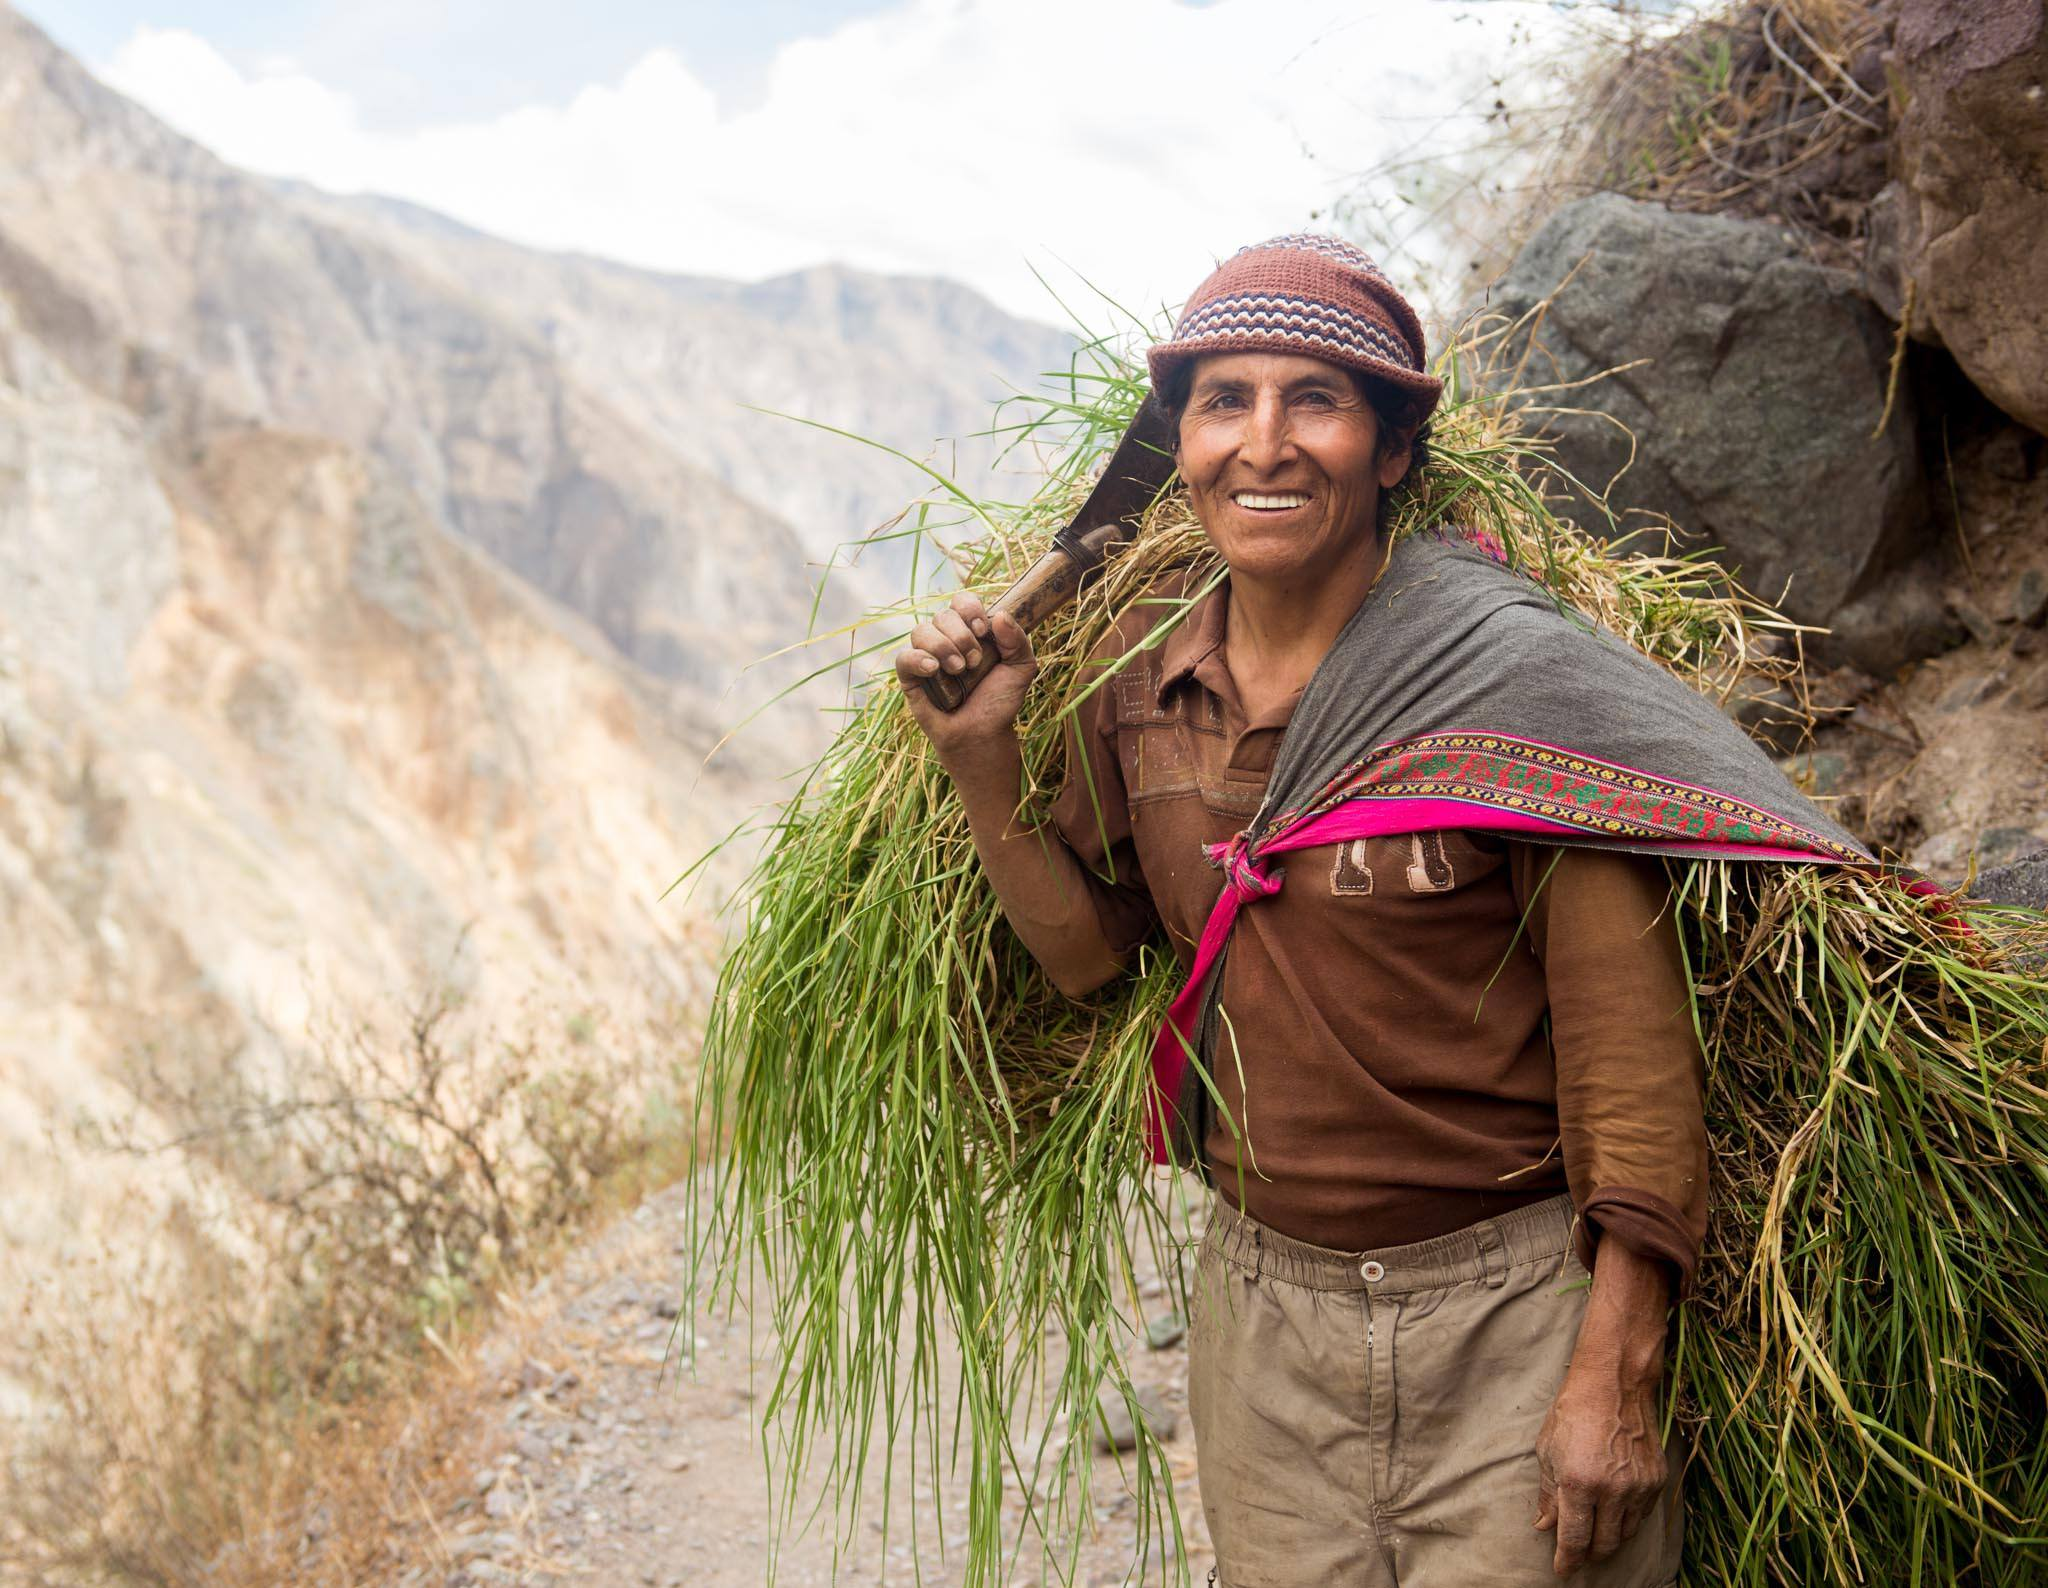 If you're friendly and curious, most people will give you a big smile when you ask to take their photos – even when they're holding a giant machete. (Colca Canyon, Peru. 2013.)